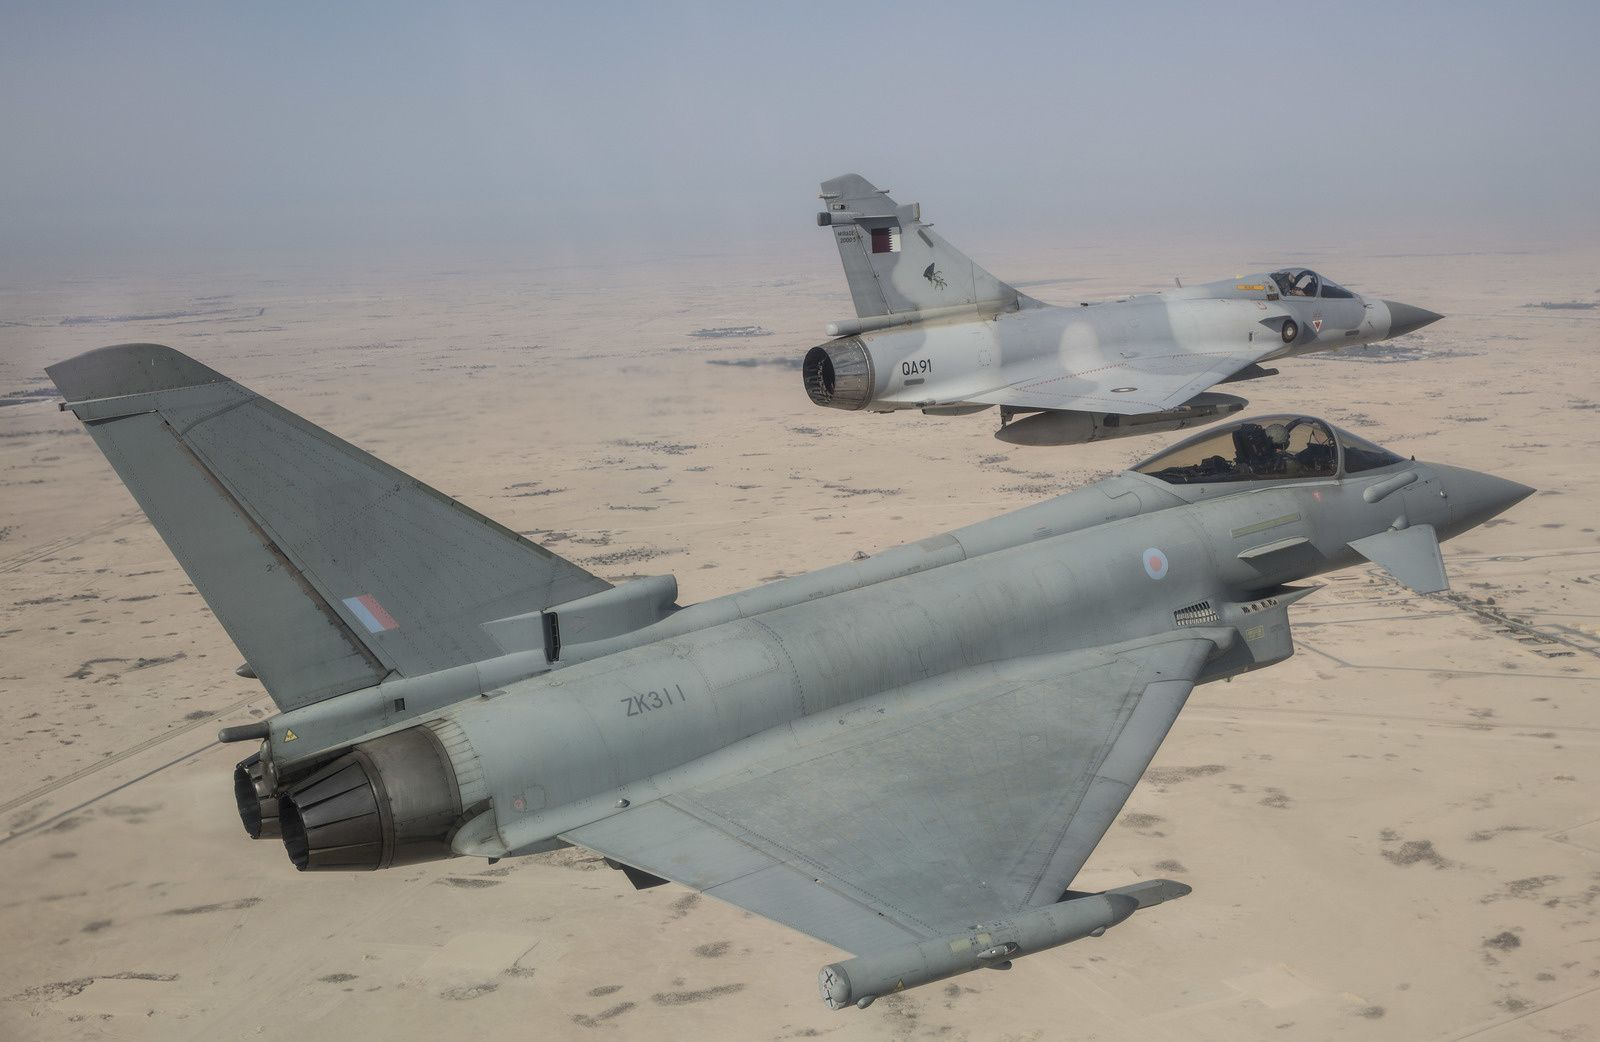 © Crown copyright - Un Eurofighter Typhoon de la Royal Air Force en vol avec un Mirage 2000-5EDA de la Force aérienne de l'Emir du Qatar